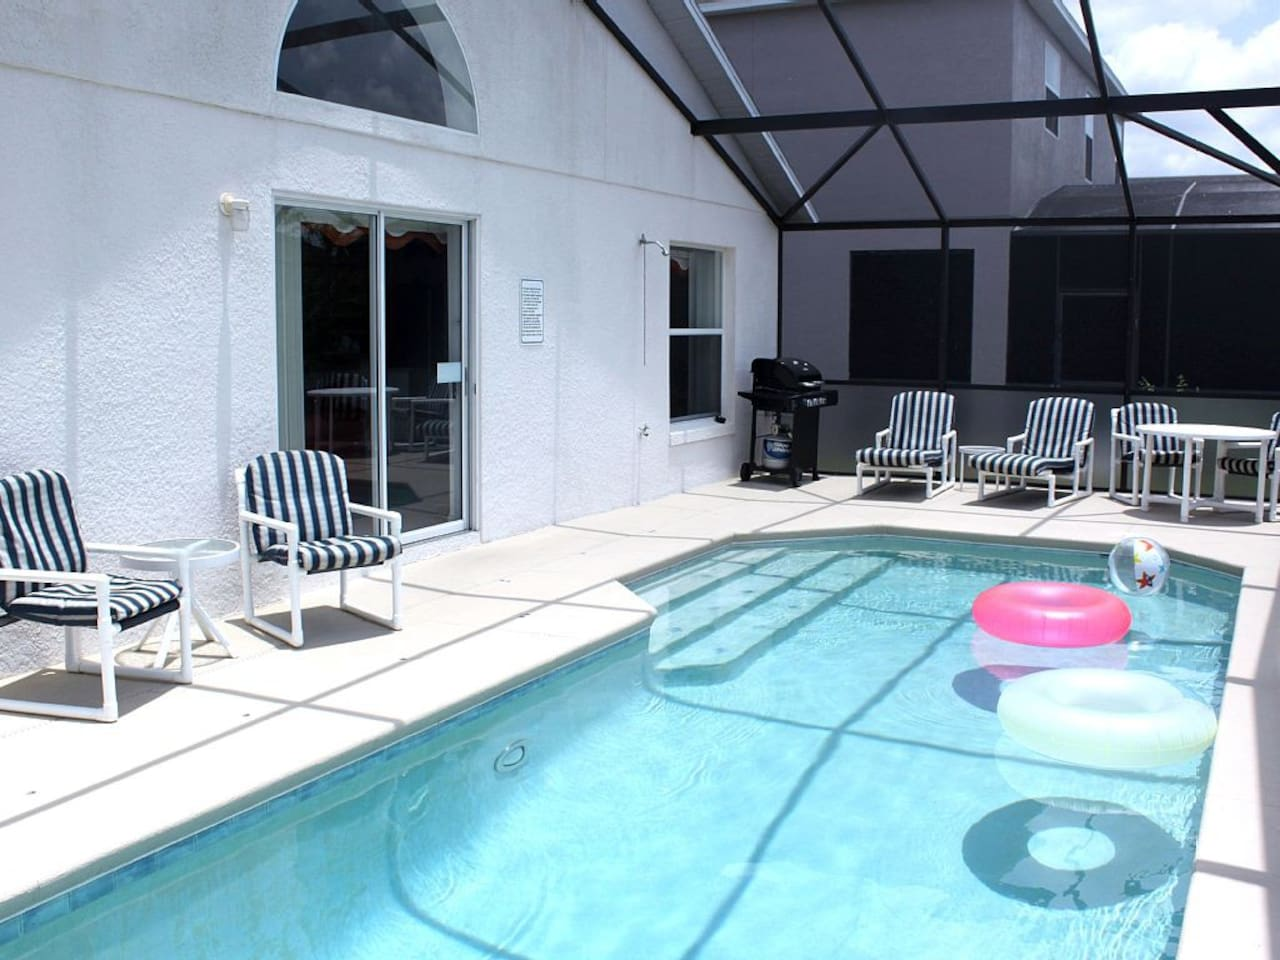 The AWESOME South Facing Pool